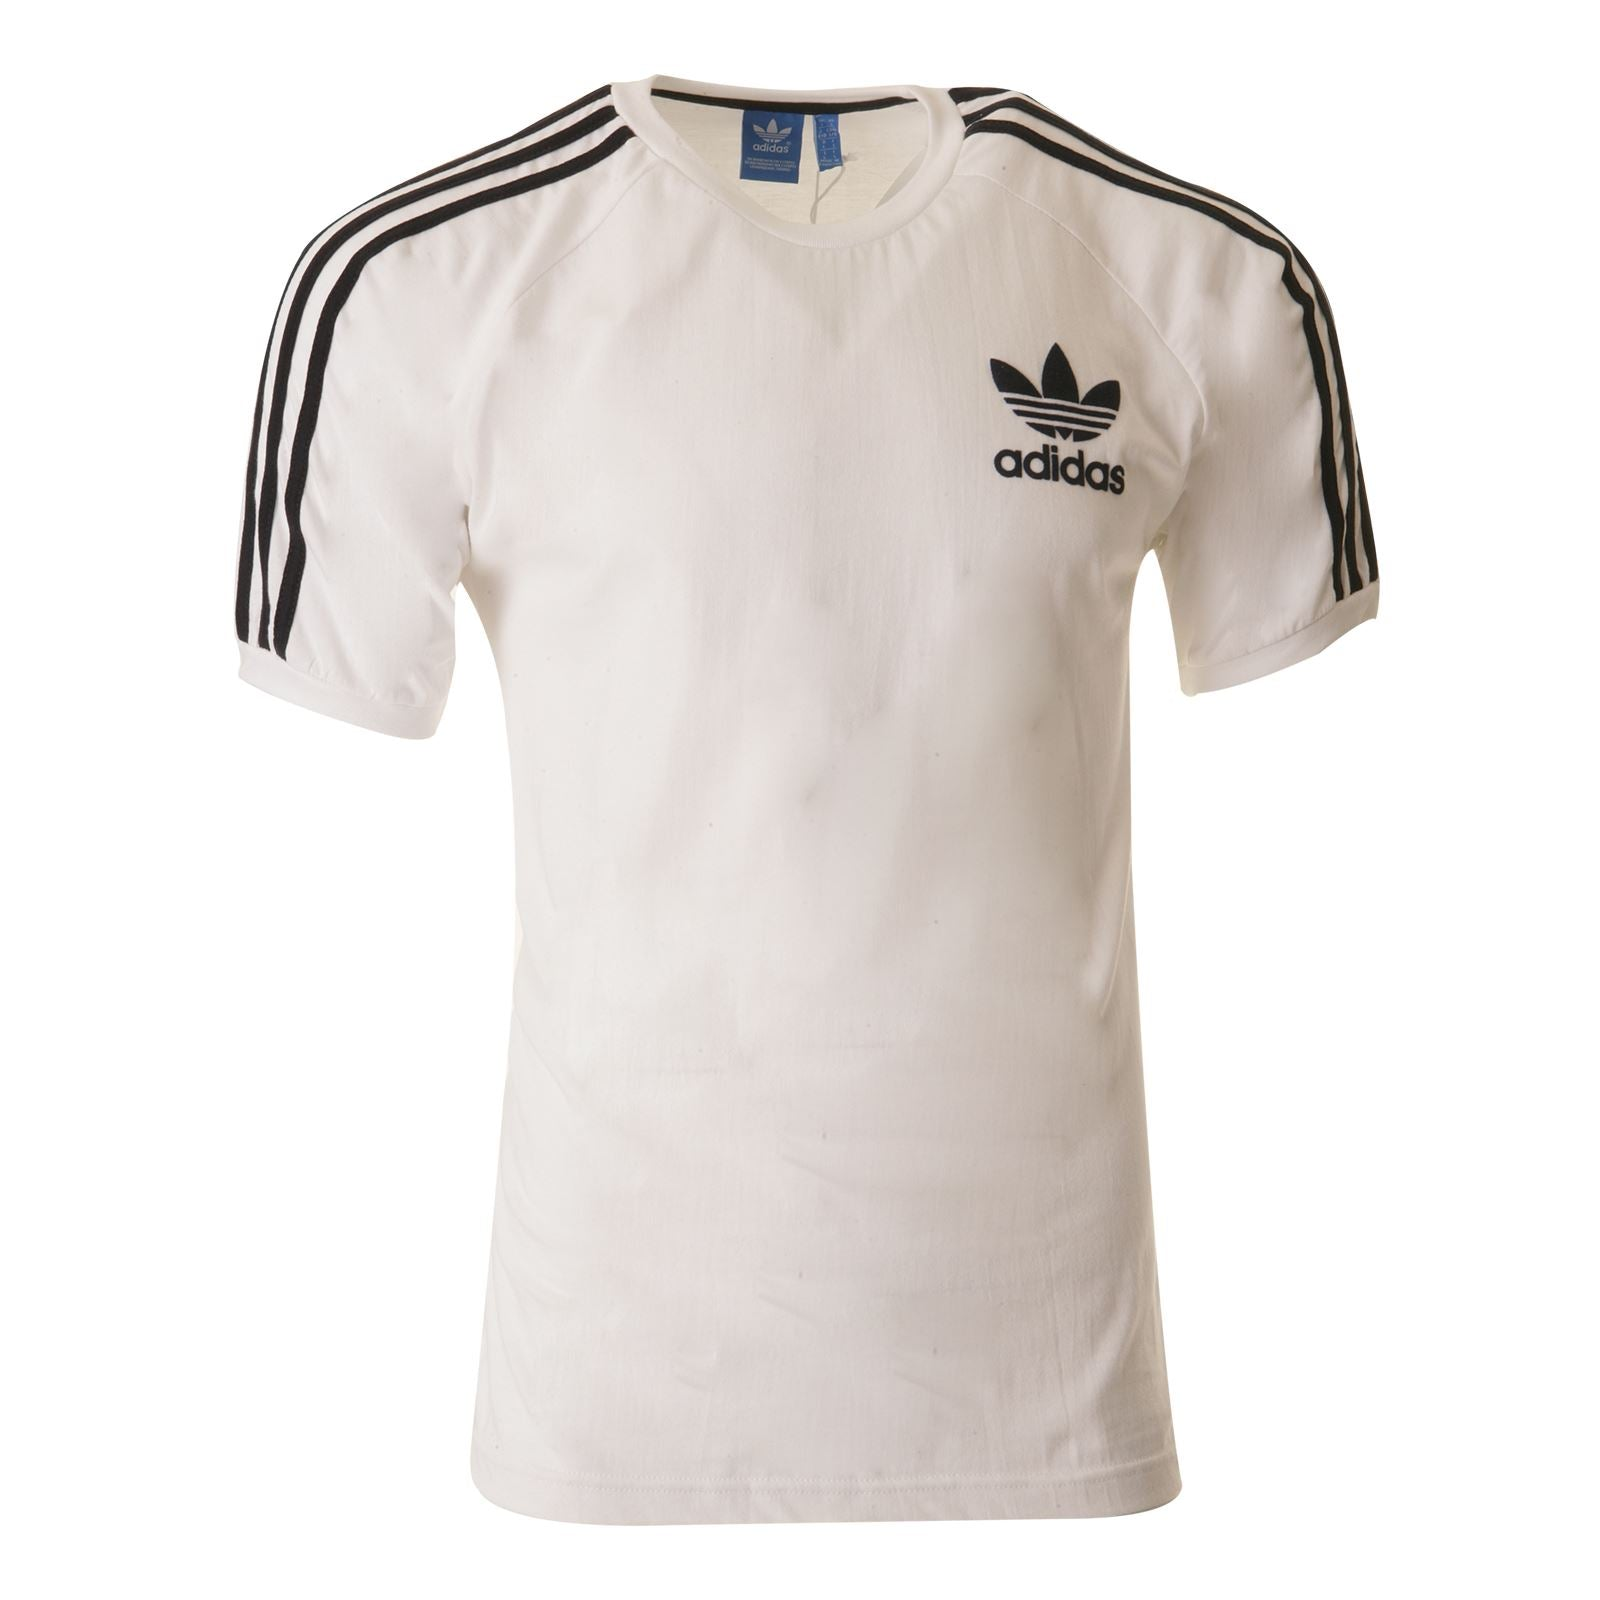 ADIDAS ORIGINALS SPORT ESSENTIALS CALIFORNIA TEE Mens BLACK/NAVY/BLUE/WHITE S-XL White